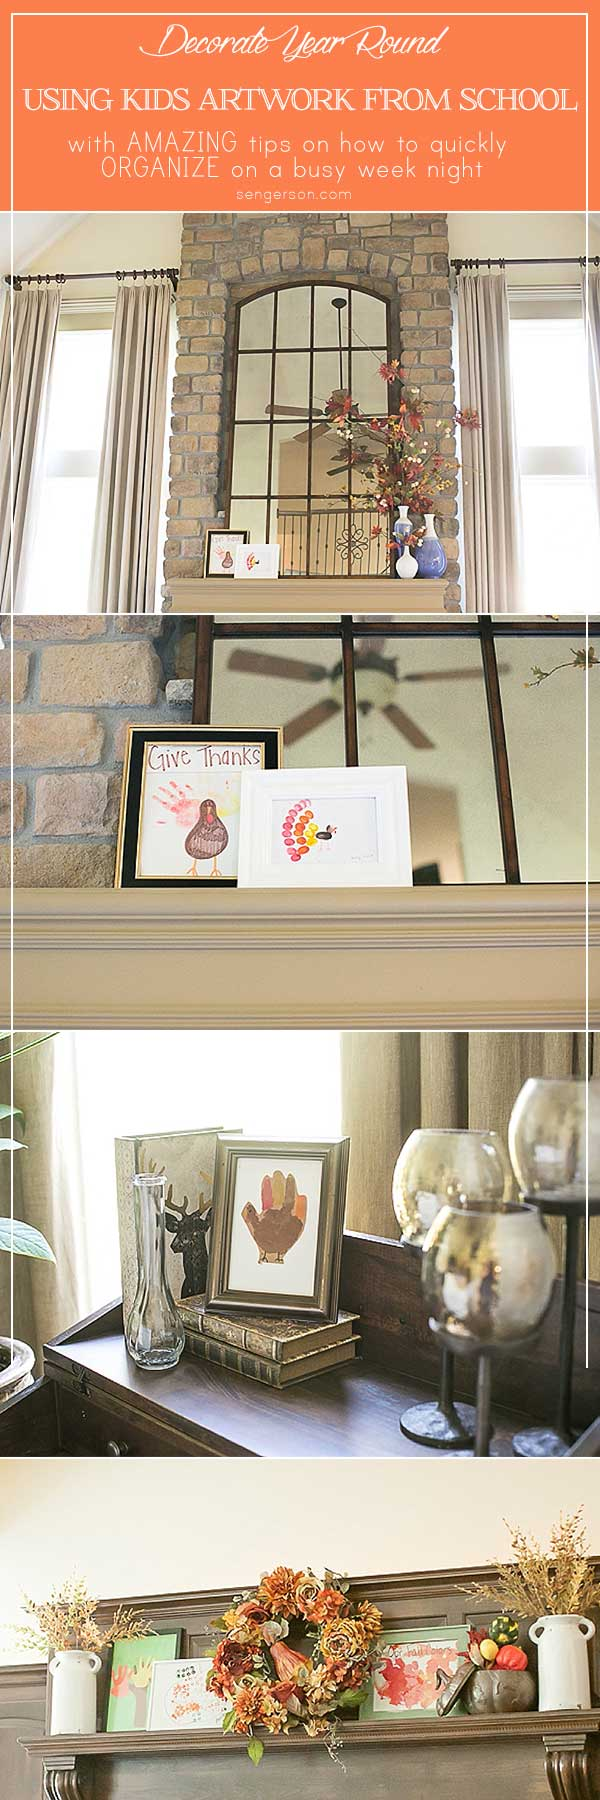 Kids Artwork Pin Use Art To Decorate Your Home